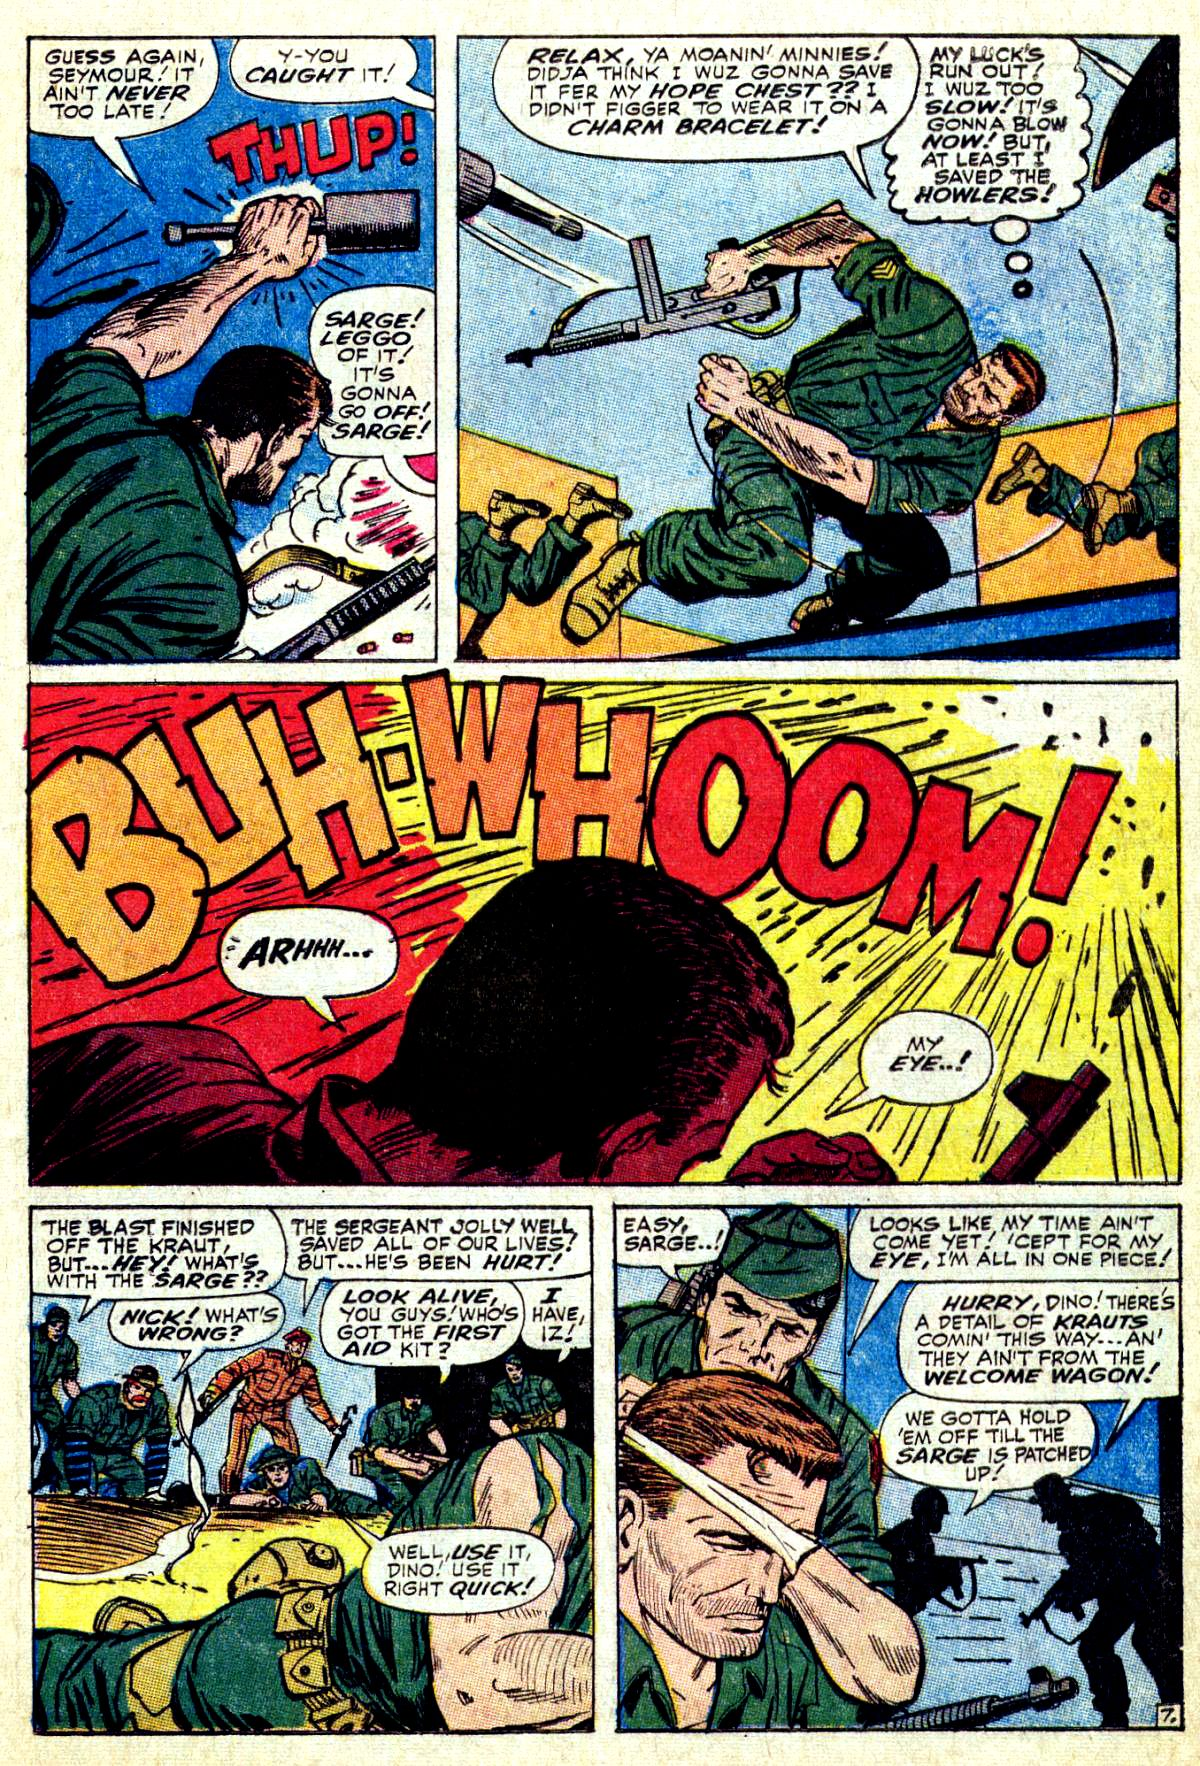 Read online Sgt. Fury comic -  Issue #27 - 11